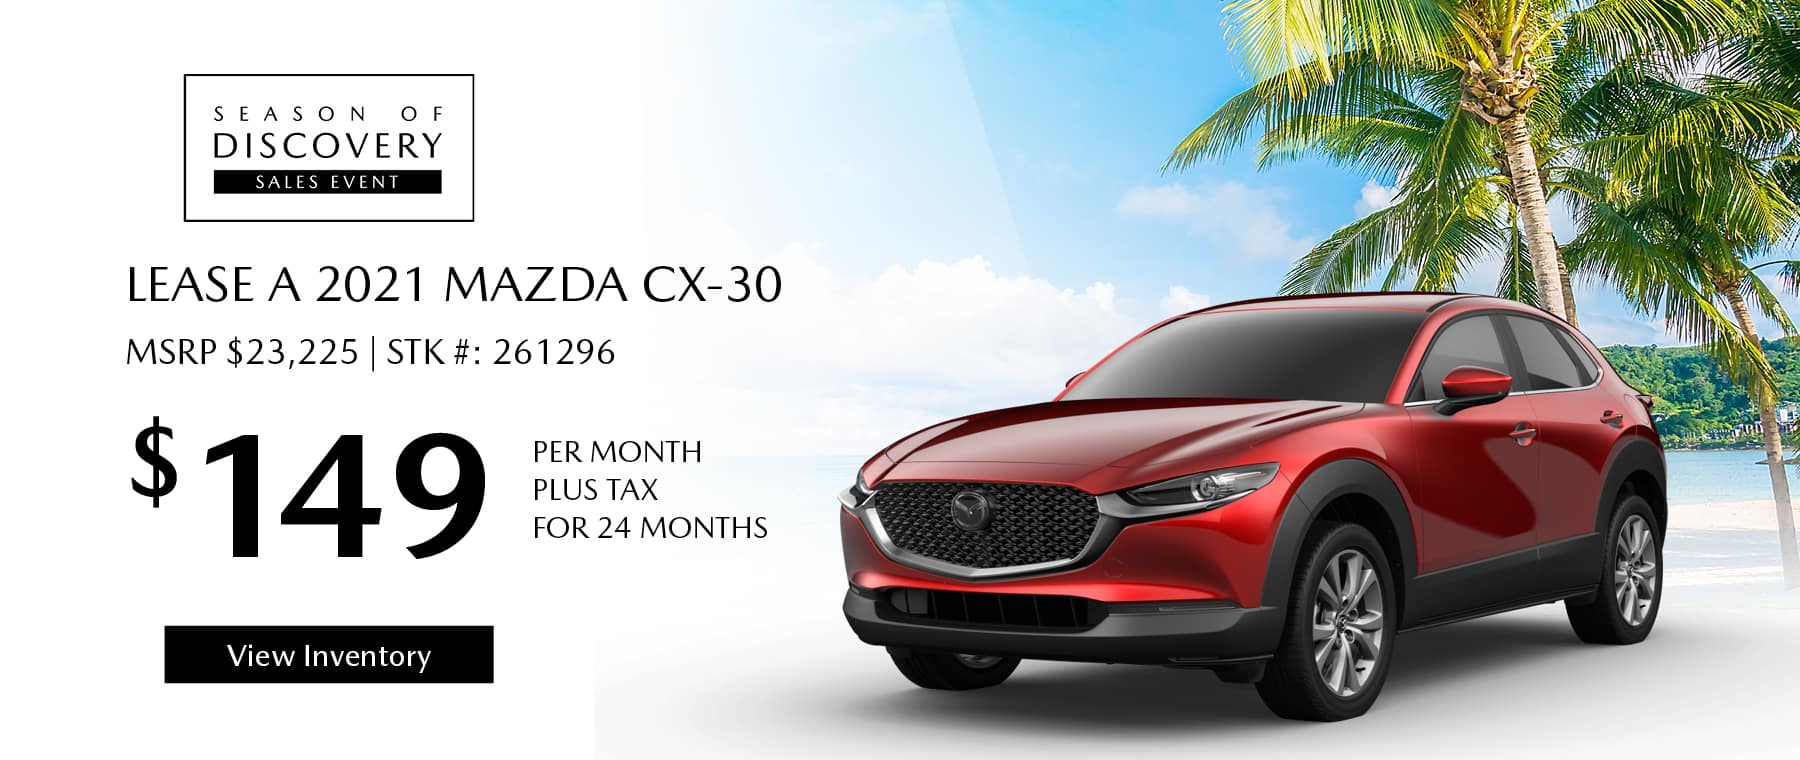 Lease the 2021 Mazda CX-30 for $149 per month, plus tax for 24 months. Click or tap here to view our inventory.